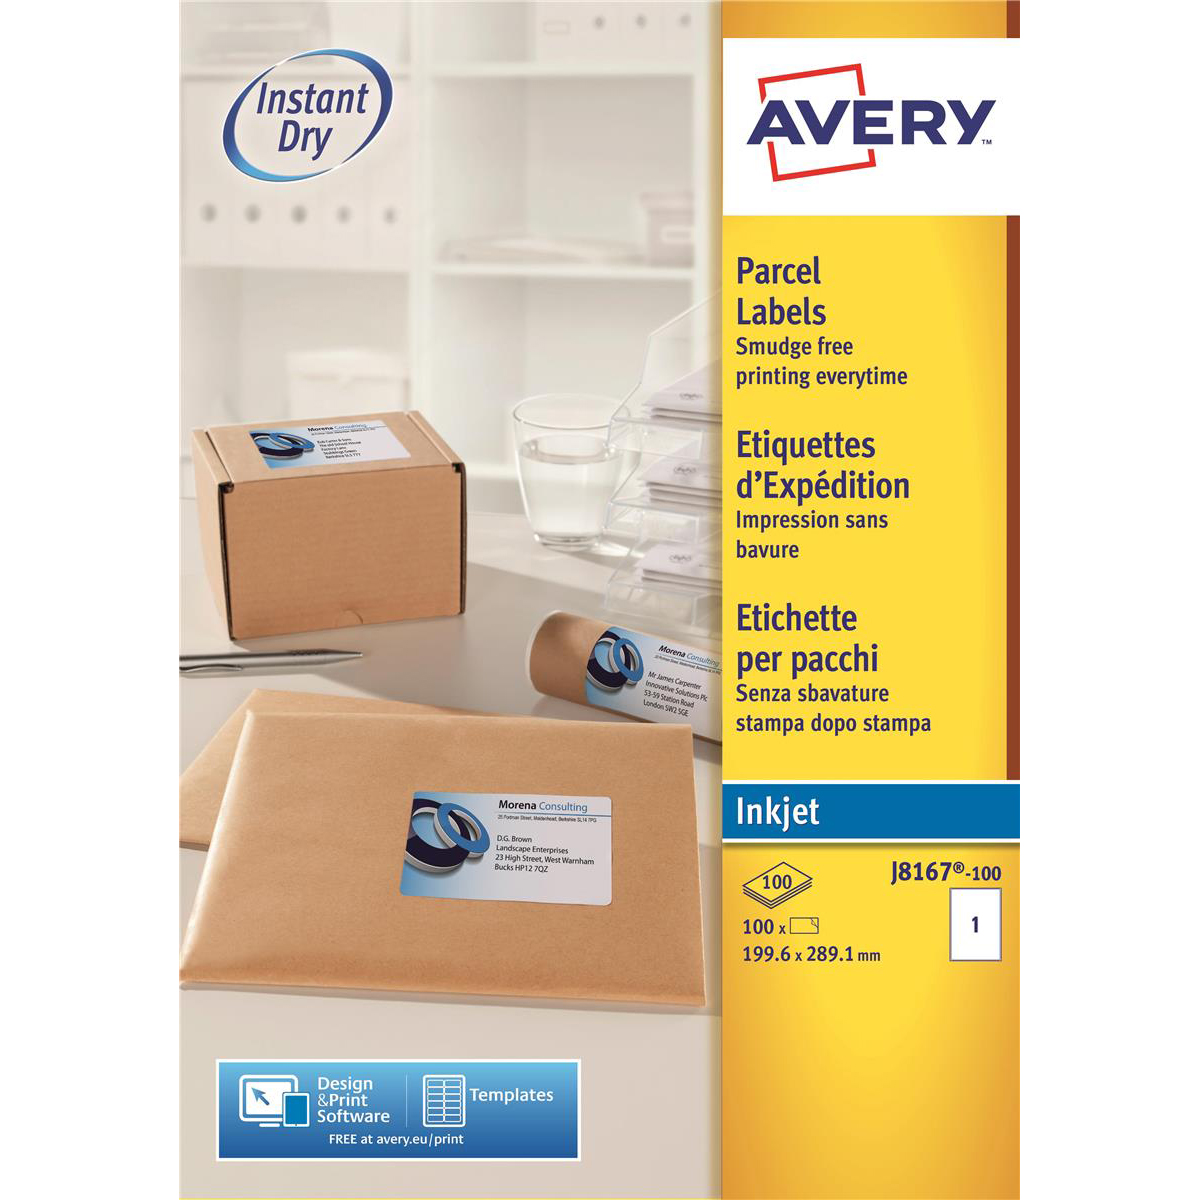 Avery Quick DRY Addressing Labels Inkjet 1 per Sheet 199.6x289.1mm White Ref J8167 [100 Labels]